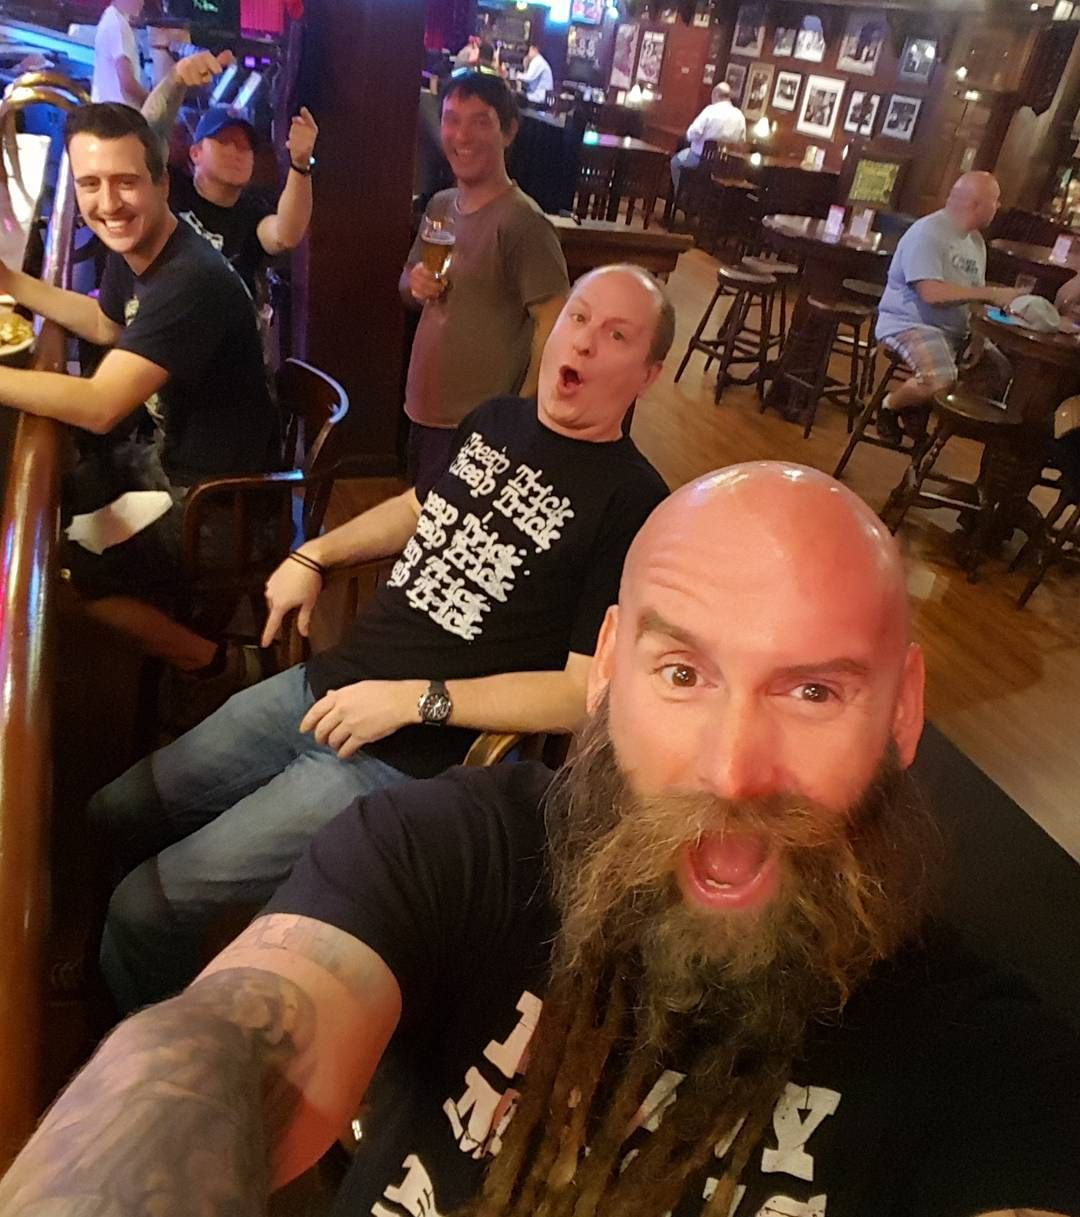 """""""Hanging with the gang on a day off in between massive @ffdp rock shows! #ShitYesSon #Football #Wings #TheMondayUsual #PositivelyAffectingLives"""""""